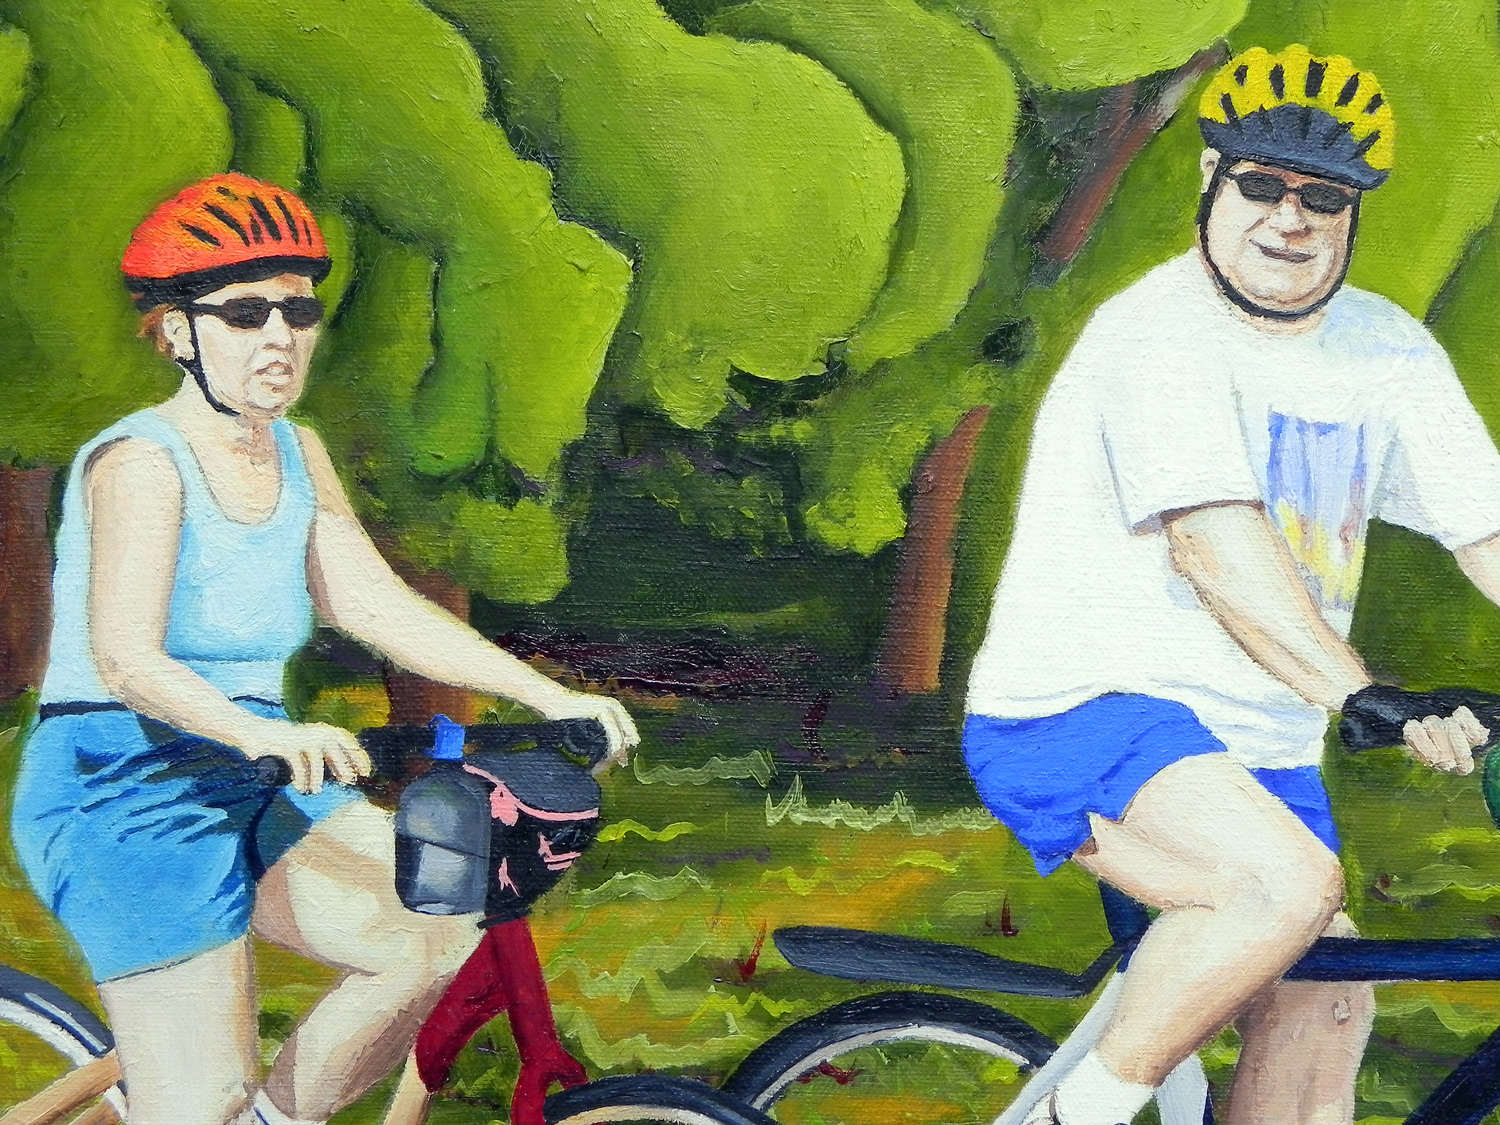 Joe & Marlene oil painting, by Billy Reiter